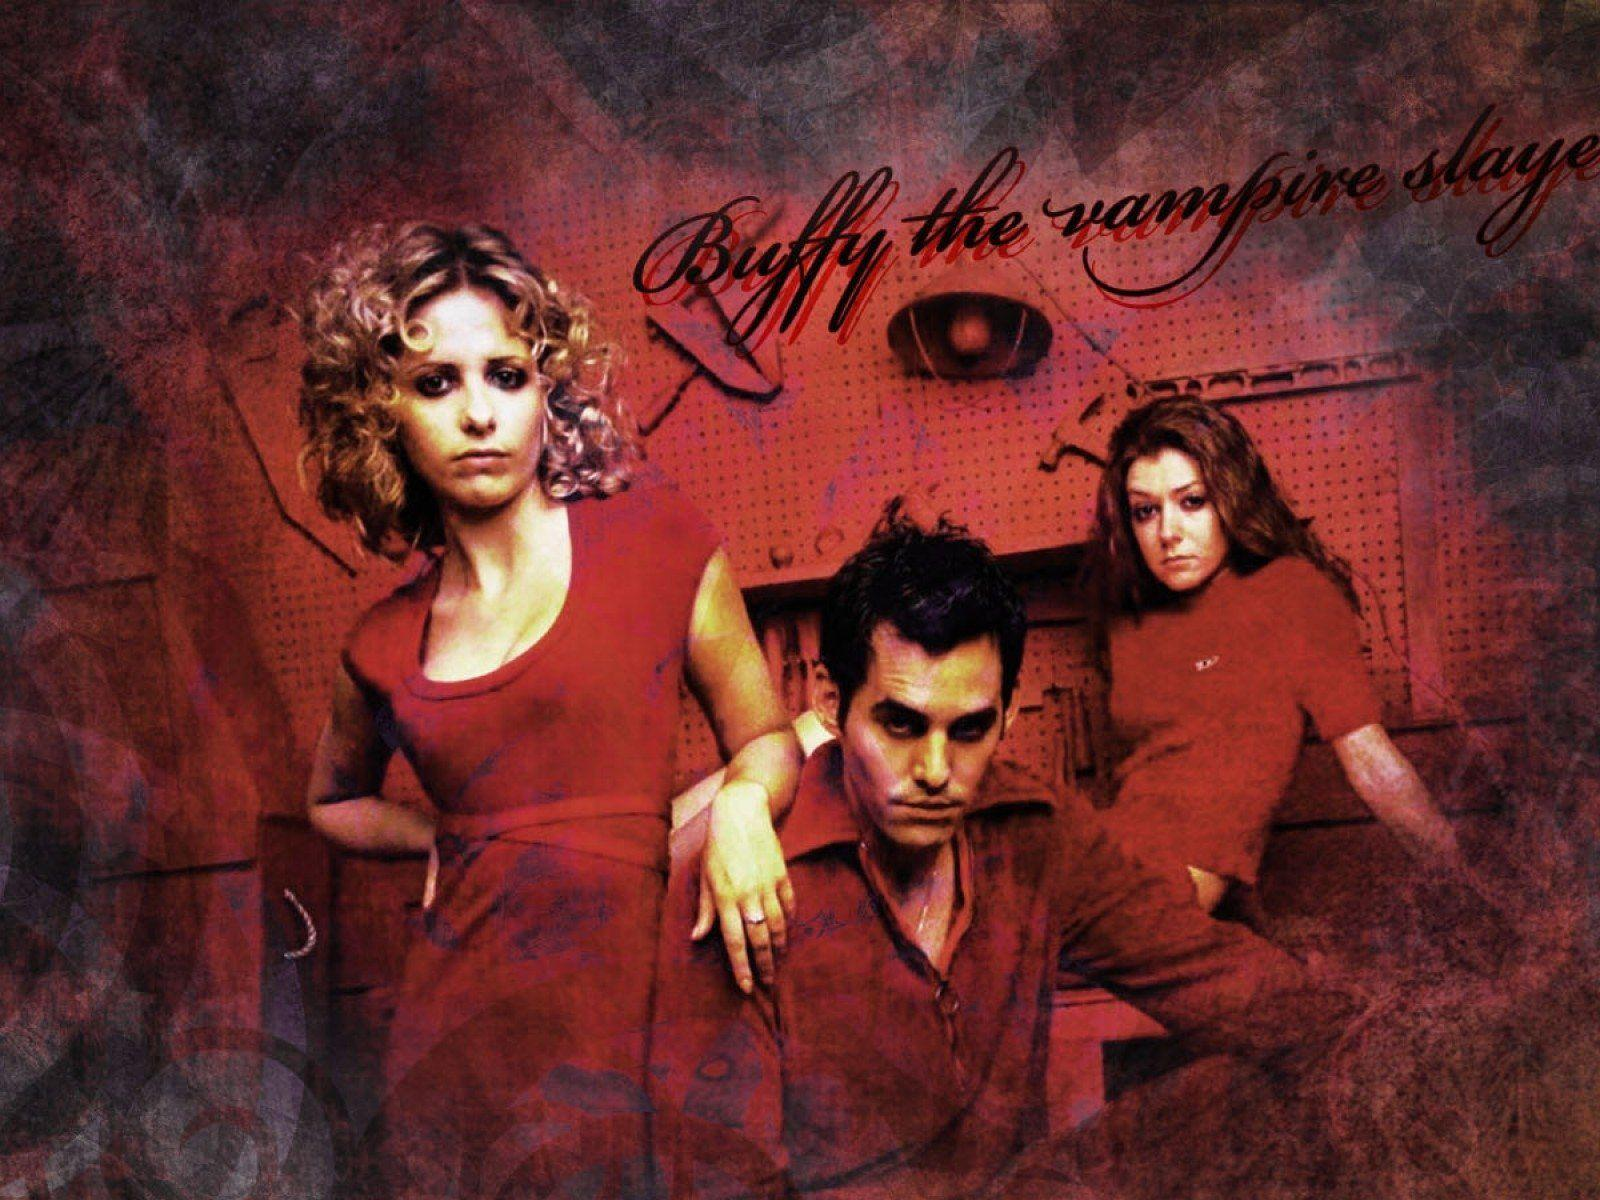 20 Buffy The Vampire Slayer HD Wallpapers | Backgrounds ...